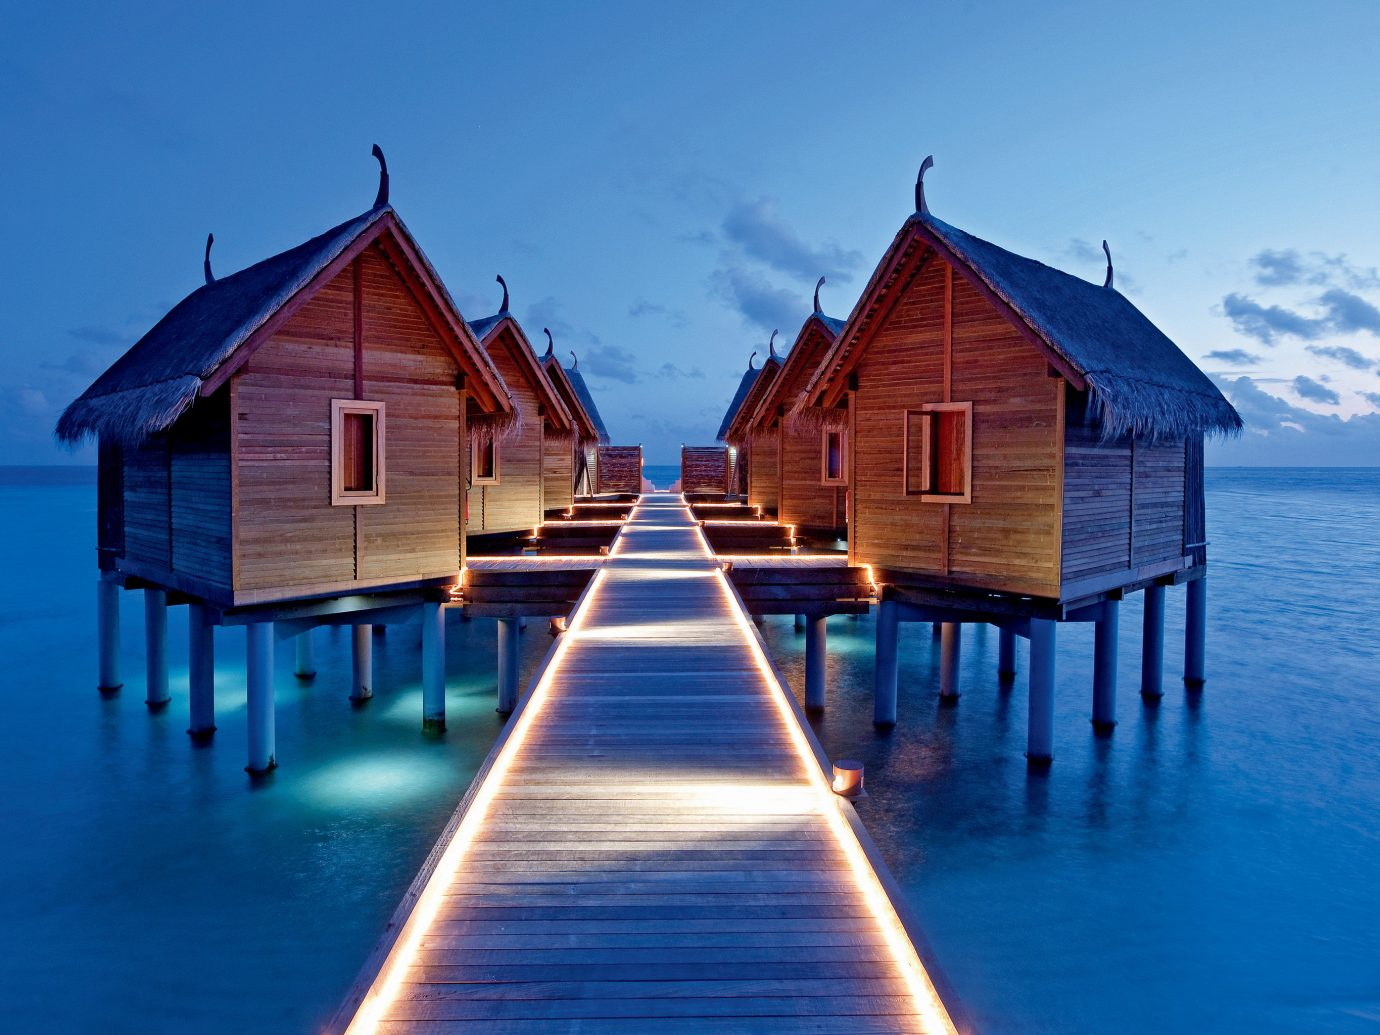 All-Inclusive Resorts Grounds Hotels Island Luxury Overwater Bungalow Romance Romantic Waterfront water house sky wooden blue outdoor vacation scene Ocean reflection Sea Beach sunlight wood estate Resort